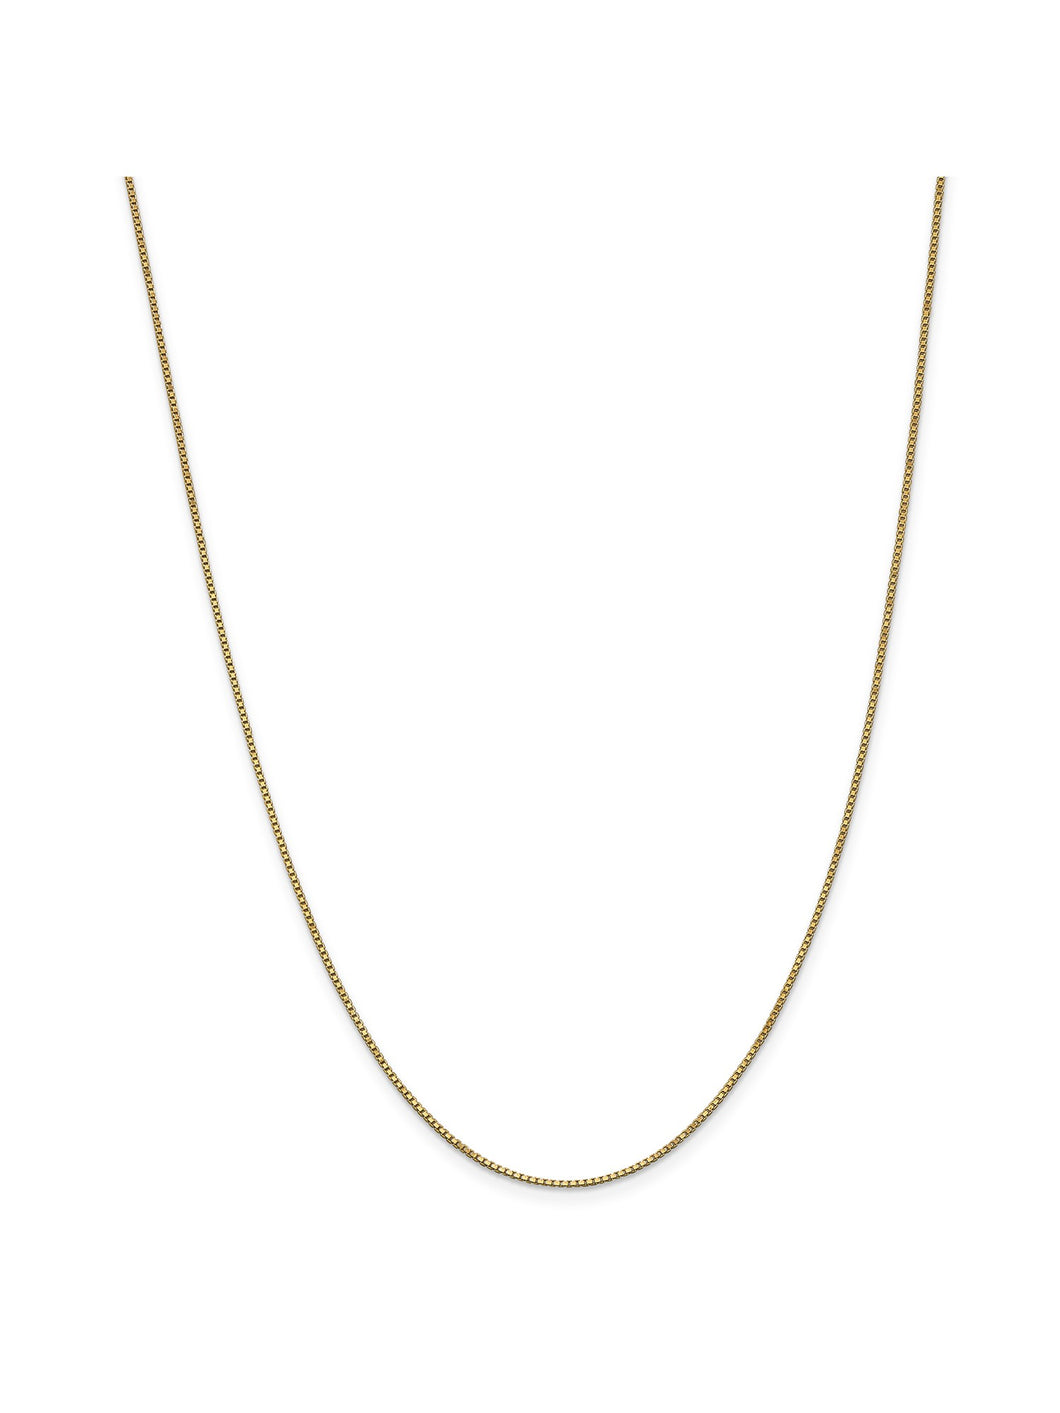 14k Yellow Gold 1mm Wide Shiny Box Chain Necklace